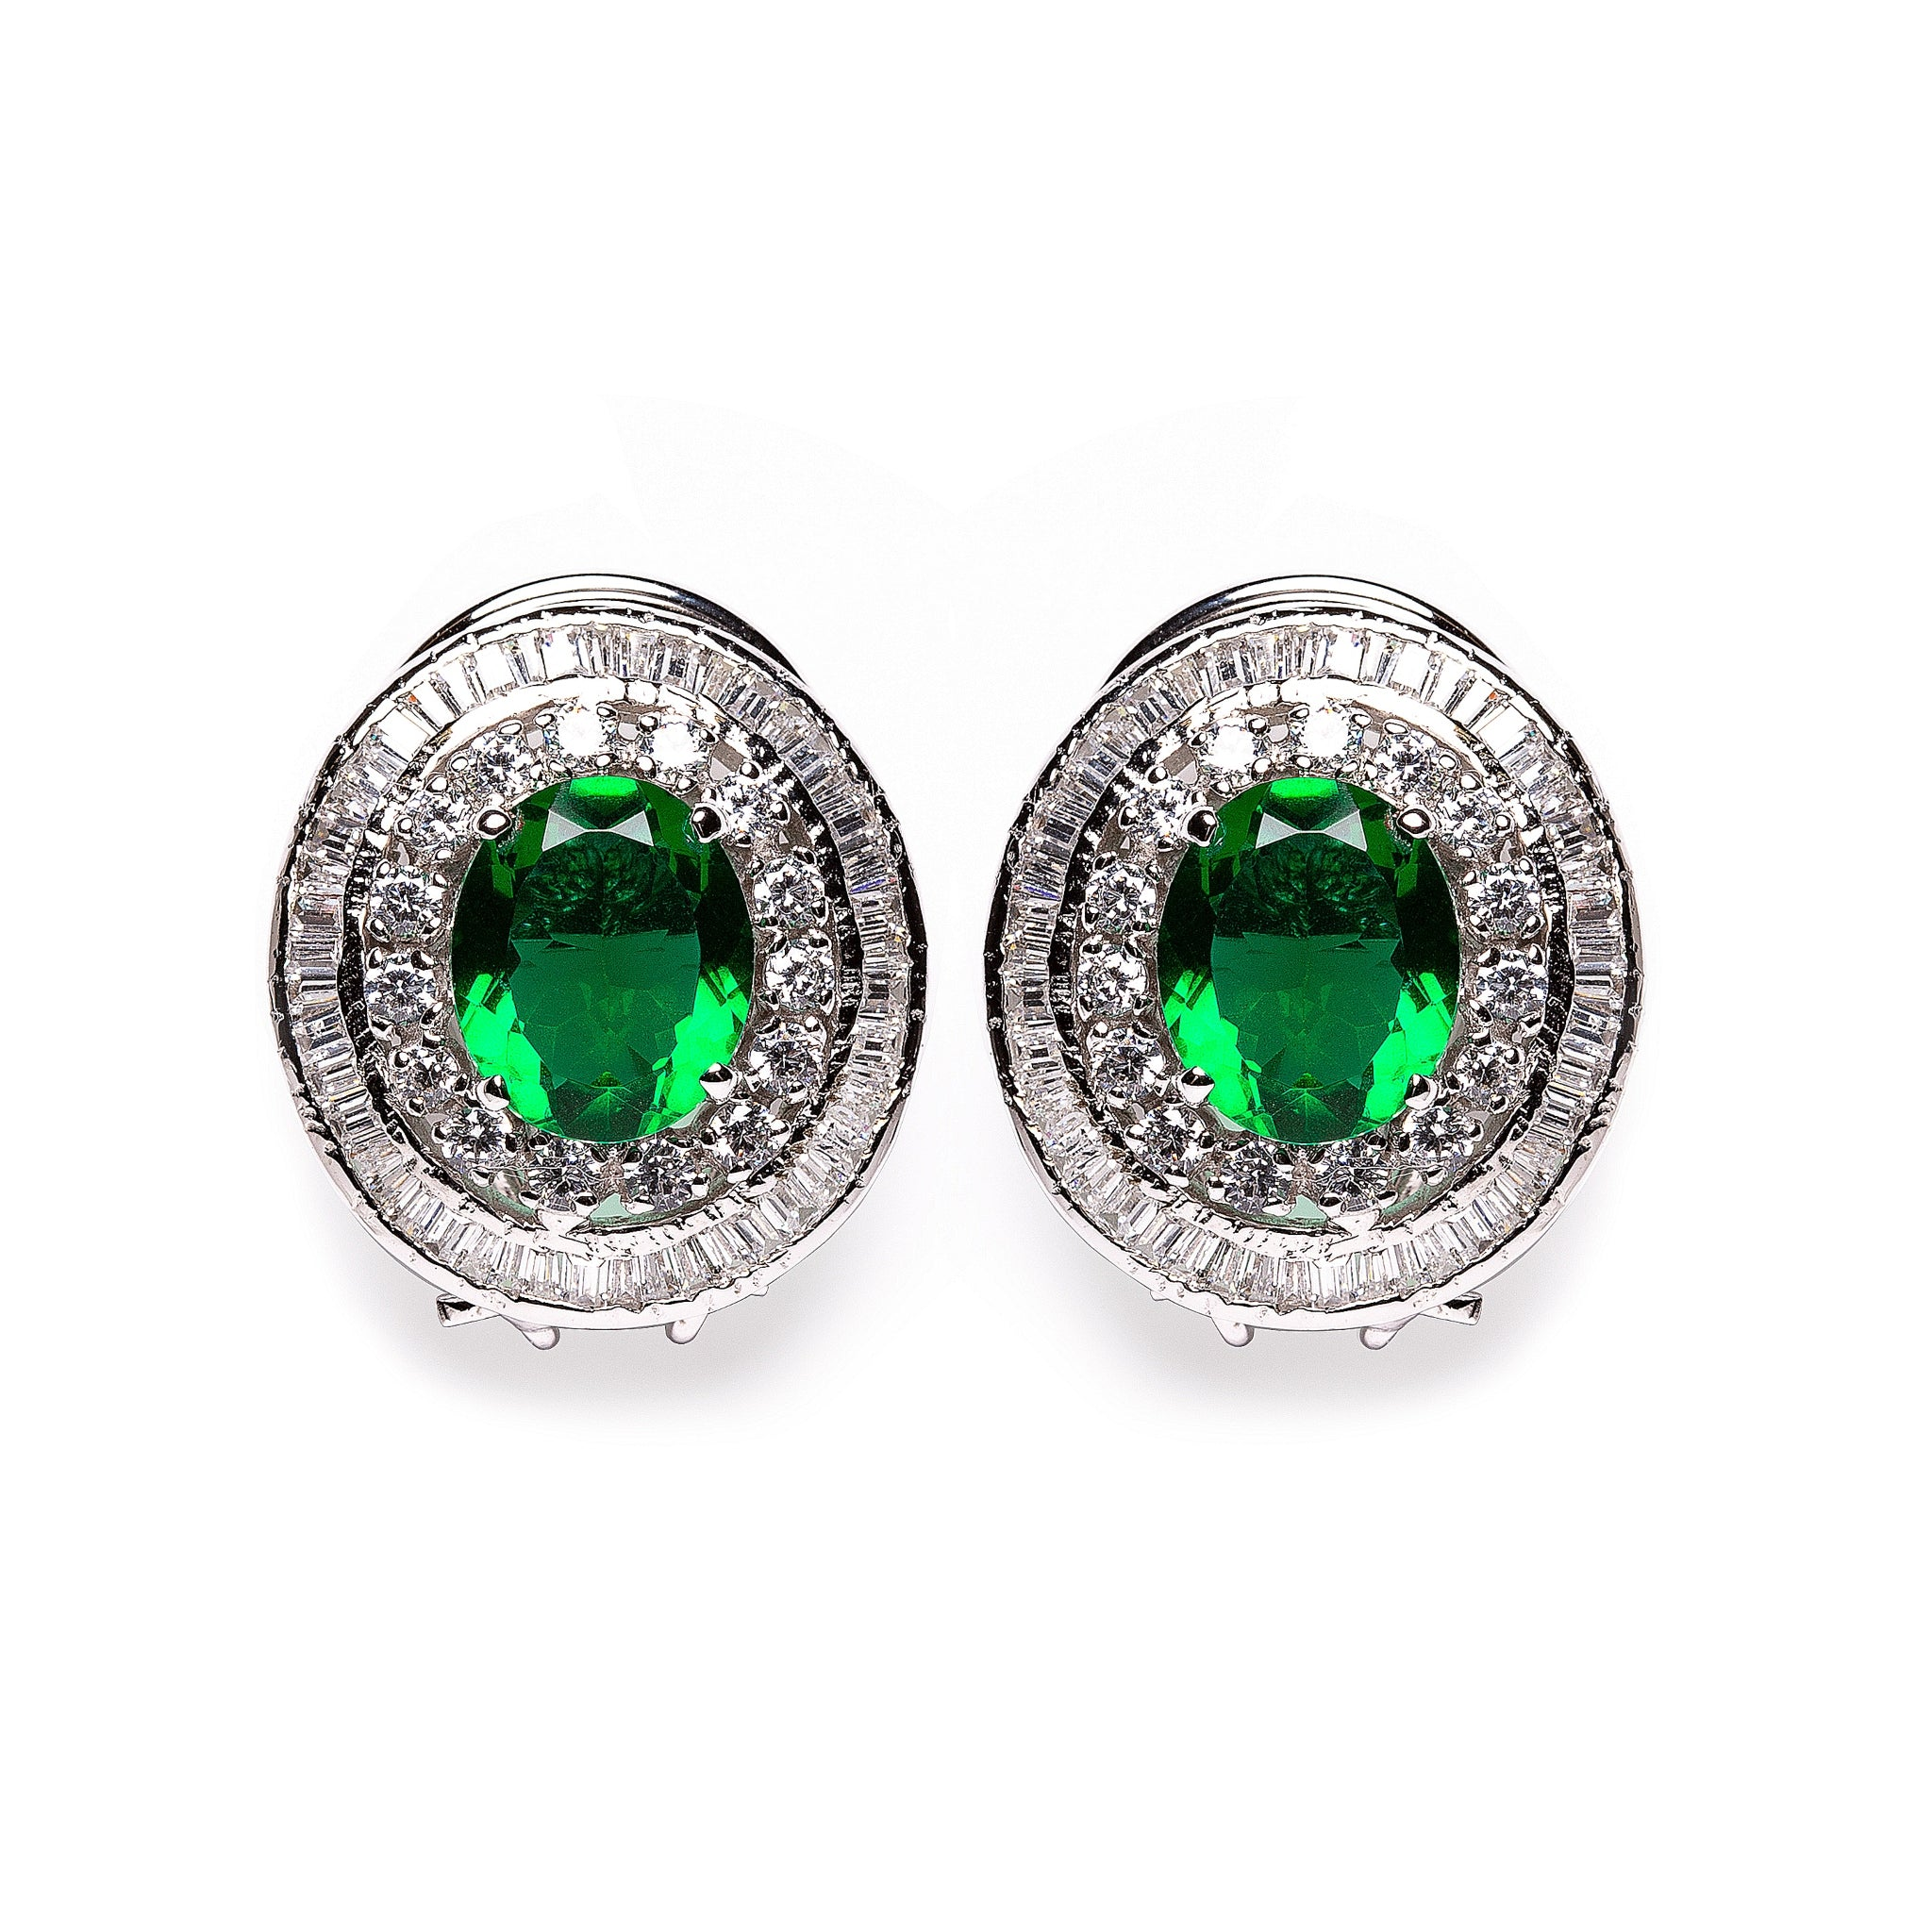 Green emerald and diamond studs